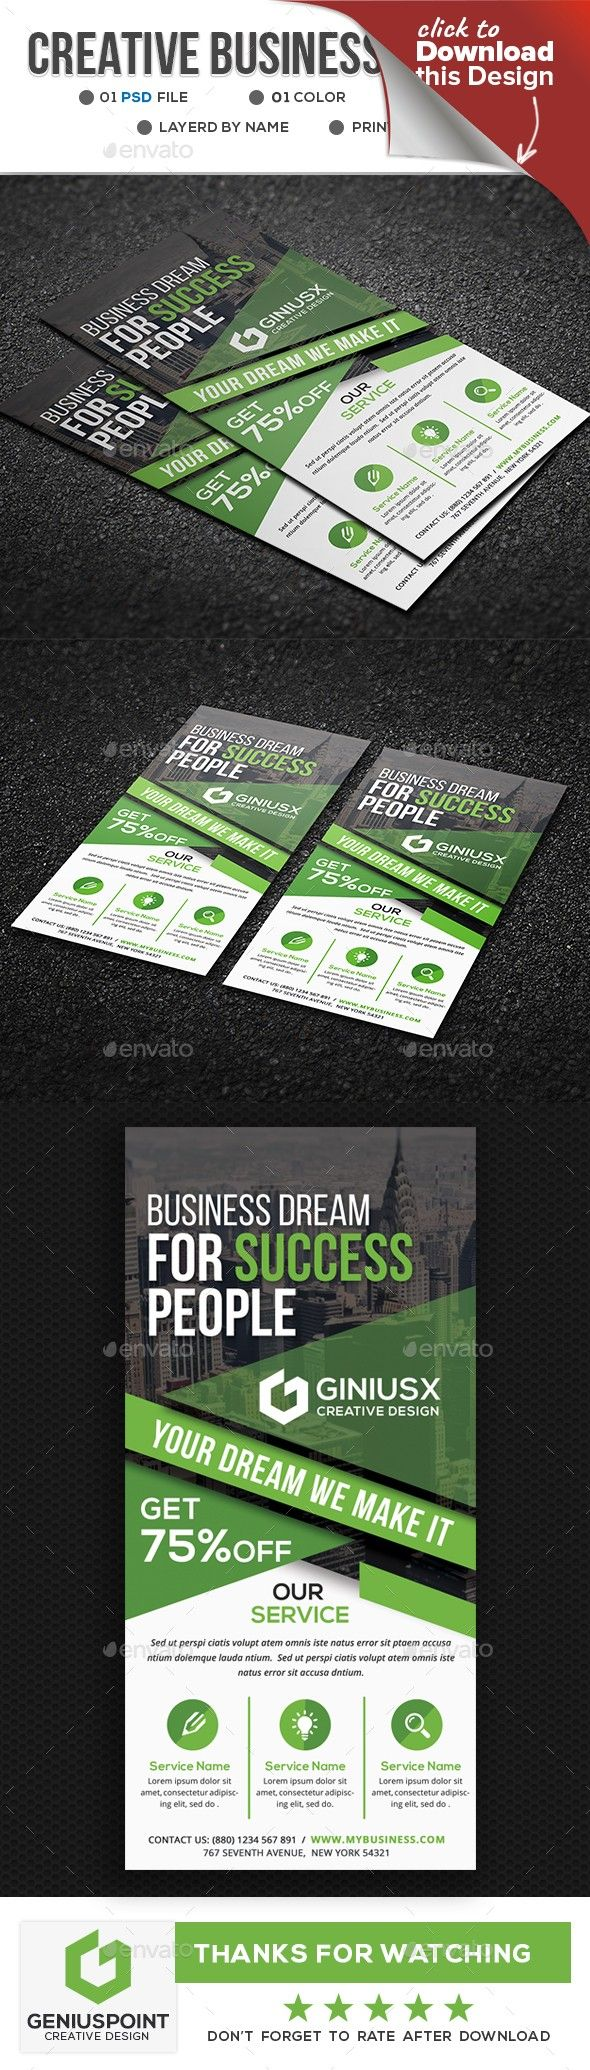 Creative Corporate DL Flyer | Flyer template, Flyer printing and ...